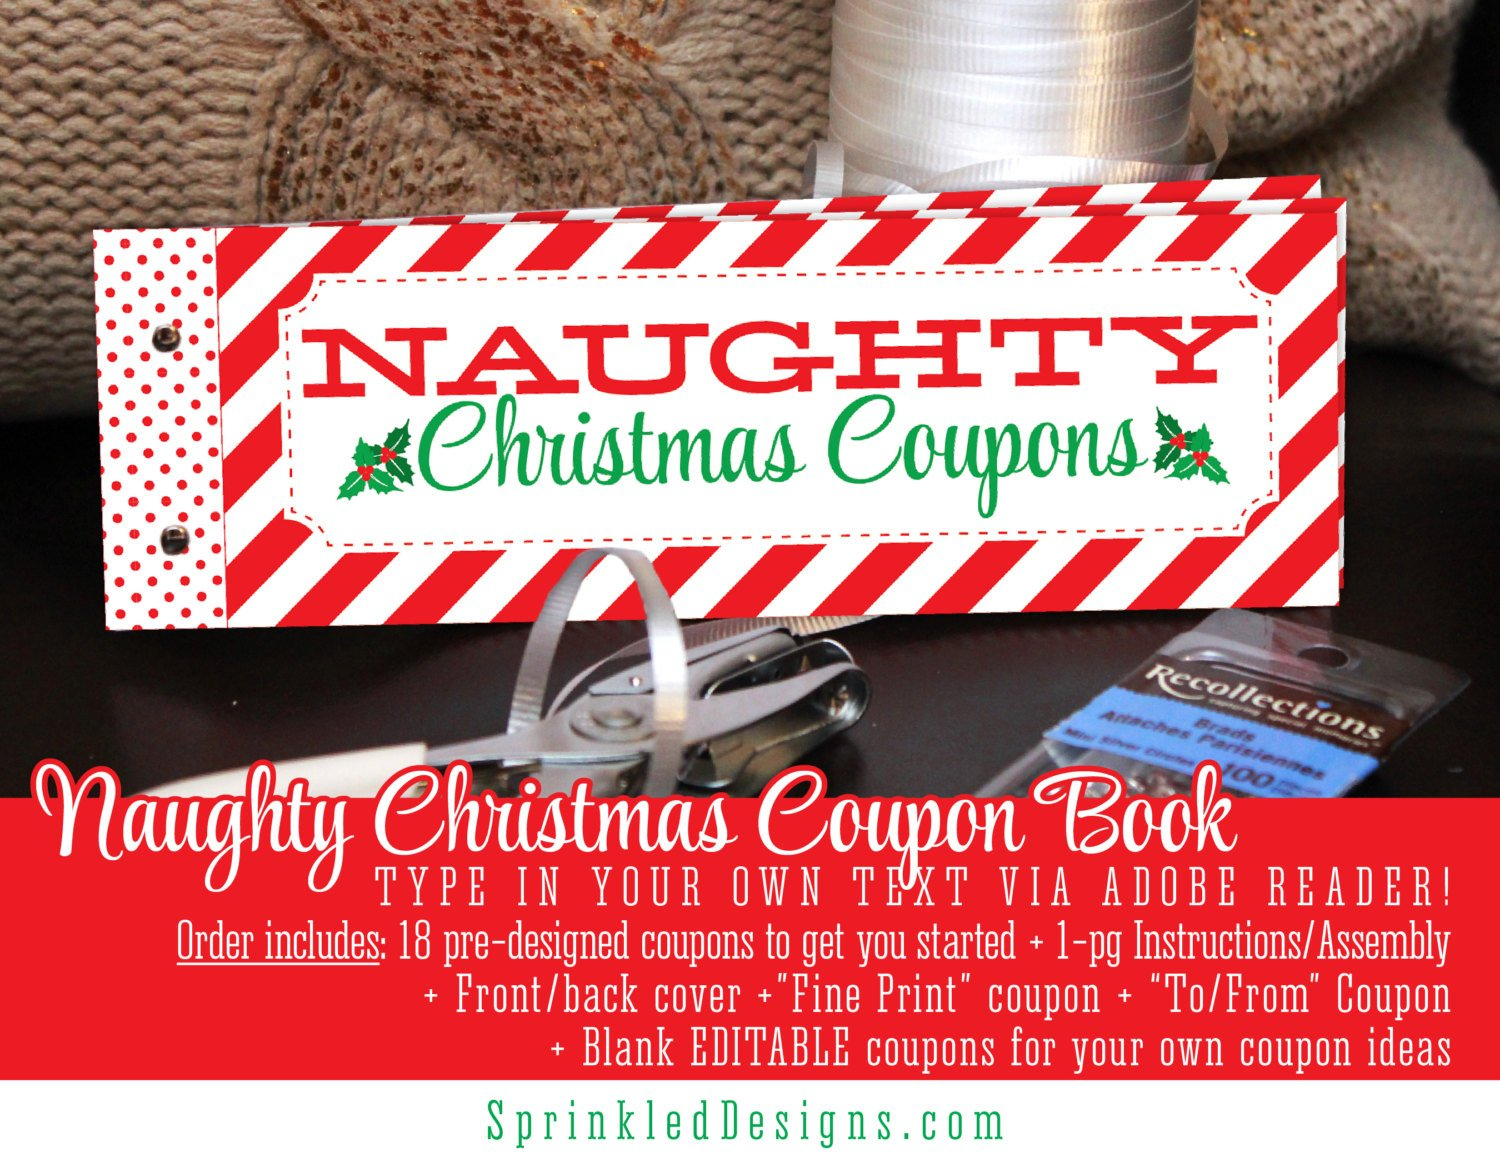 Christmas Naughty Coupon Book Sexy Christmas Gifts For Him Her | Etsy - Free Printable Coupon Book For Boyfriend